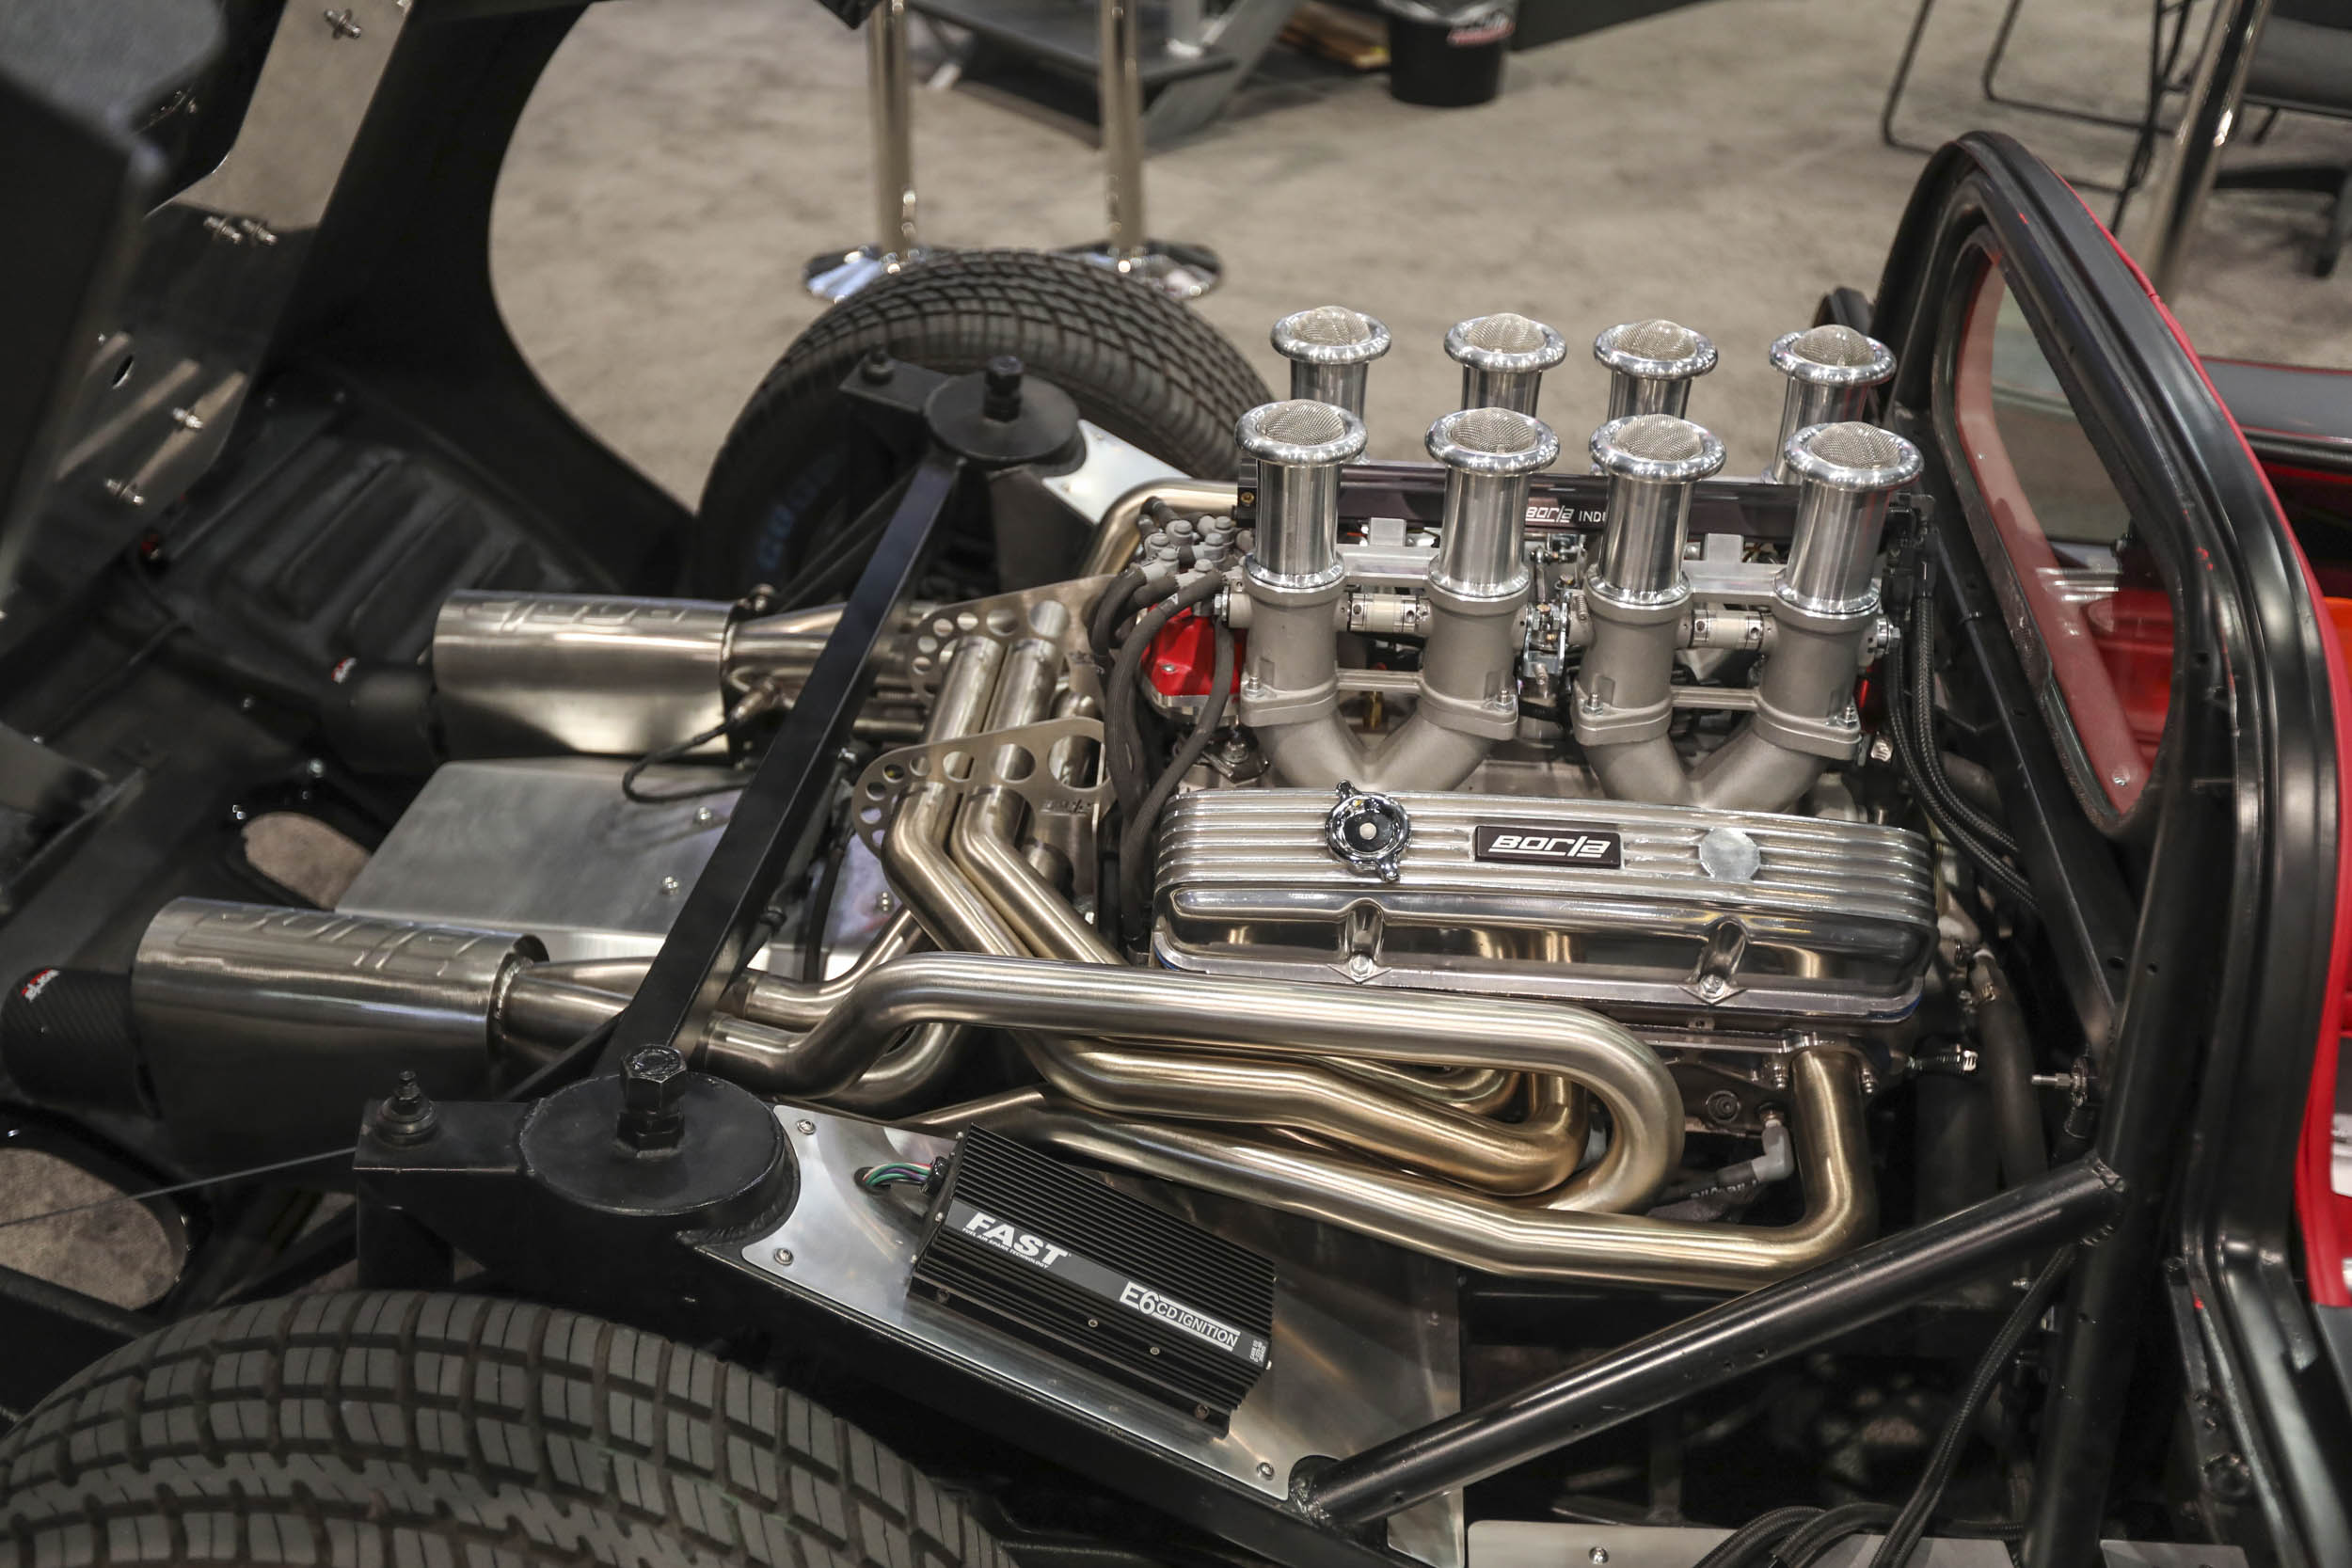 Borla-stack-injected Chevy small-block made out list of favorite engines